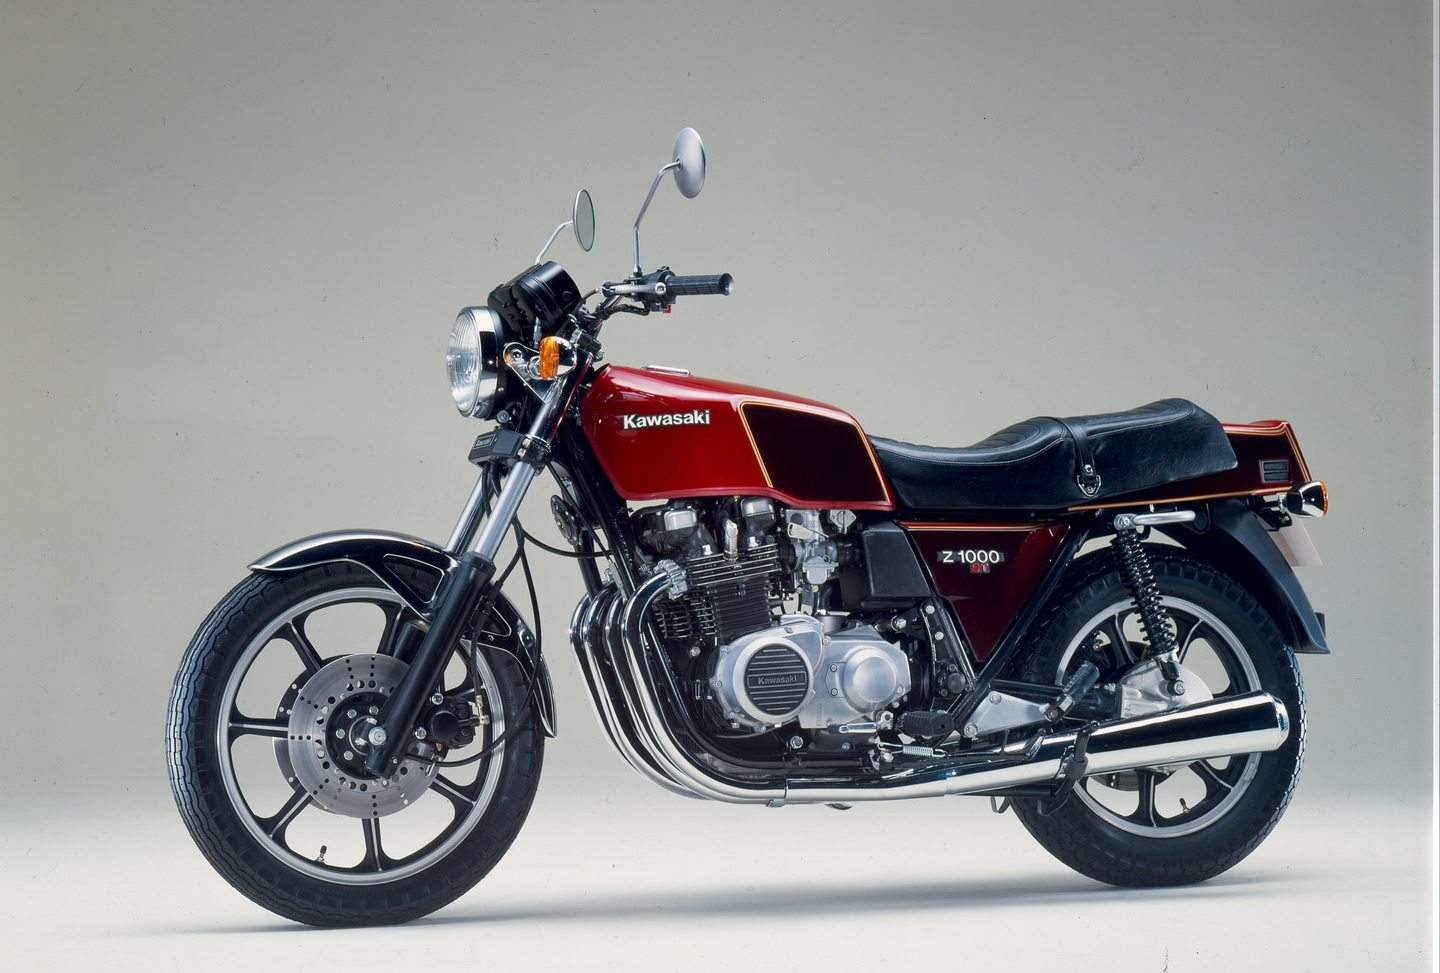 Suzuki Motorcycle With V Twin